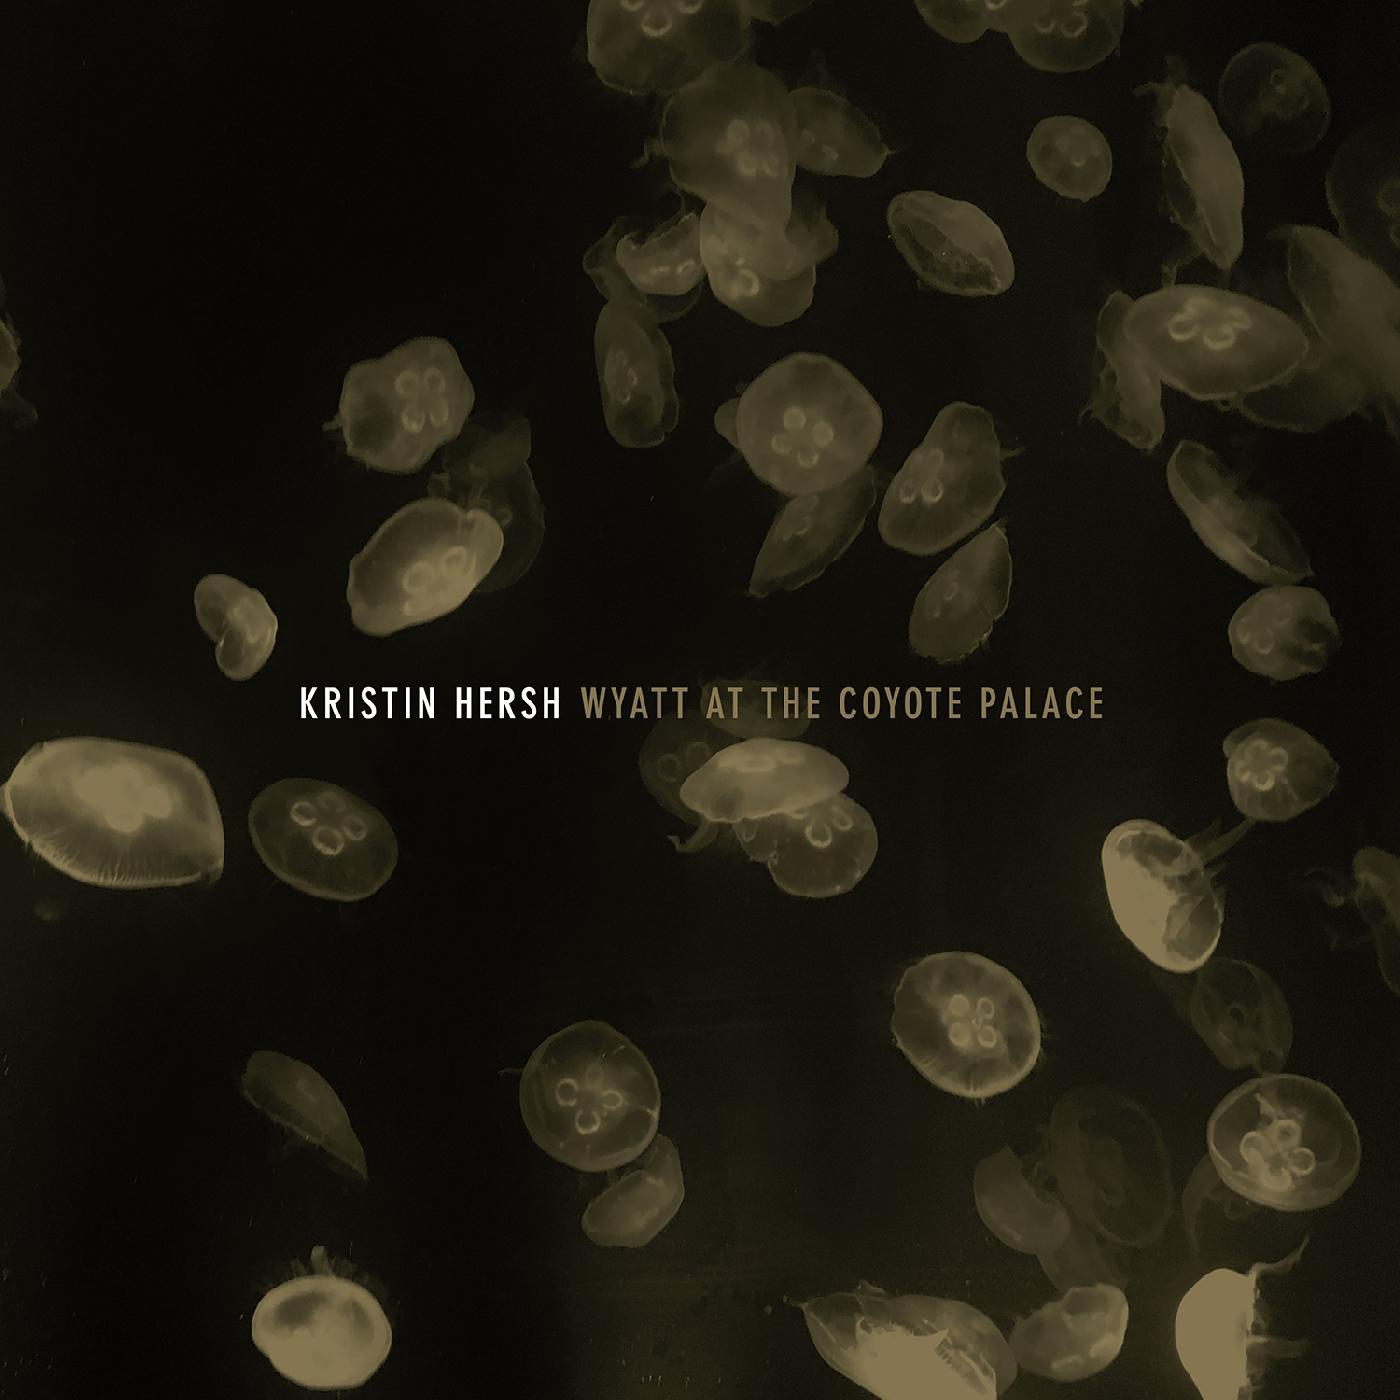 Kristin Hersh - Wyatt At The Coyote Palace [RSD Drops 2021]